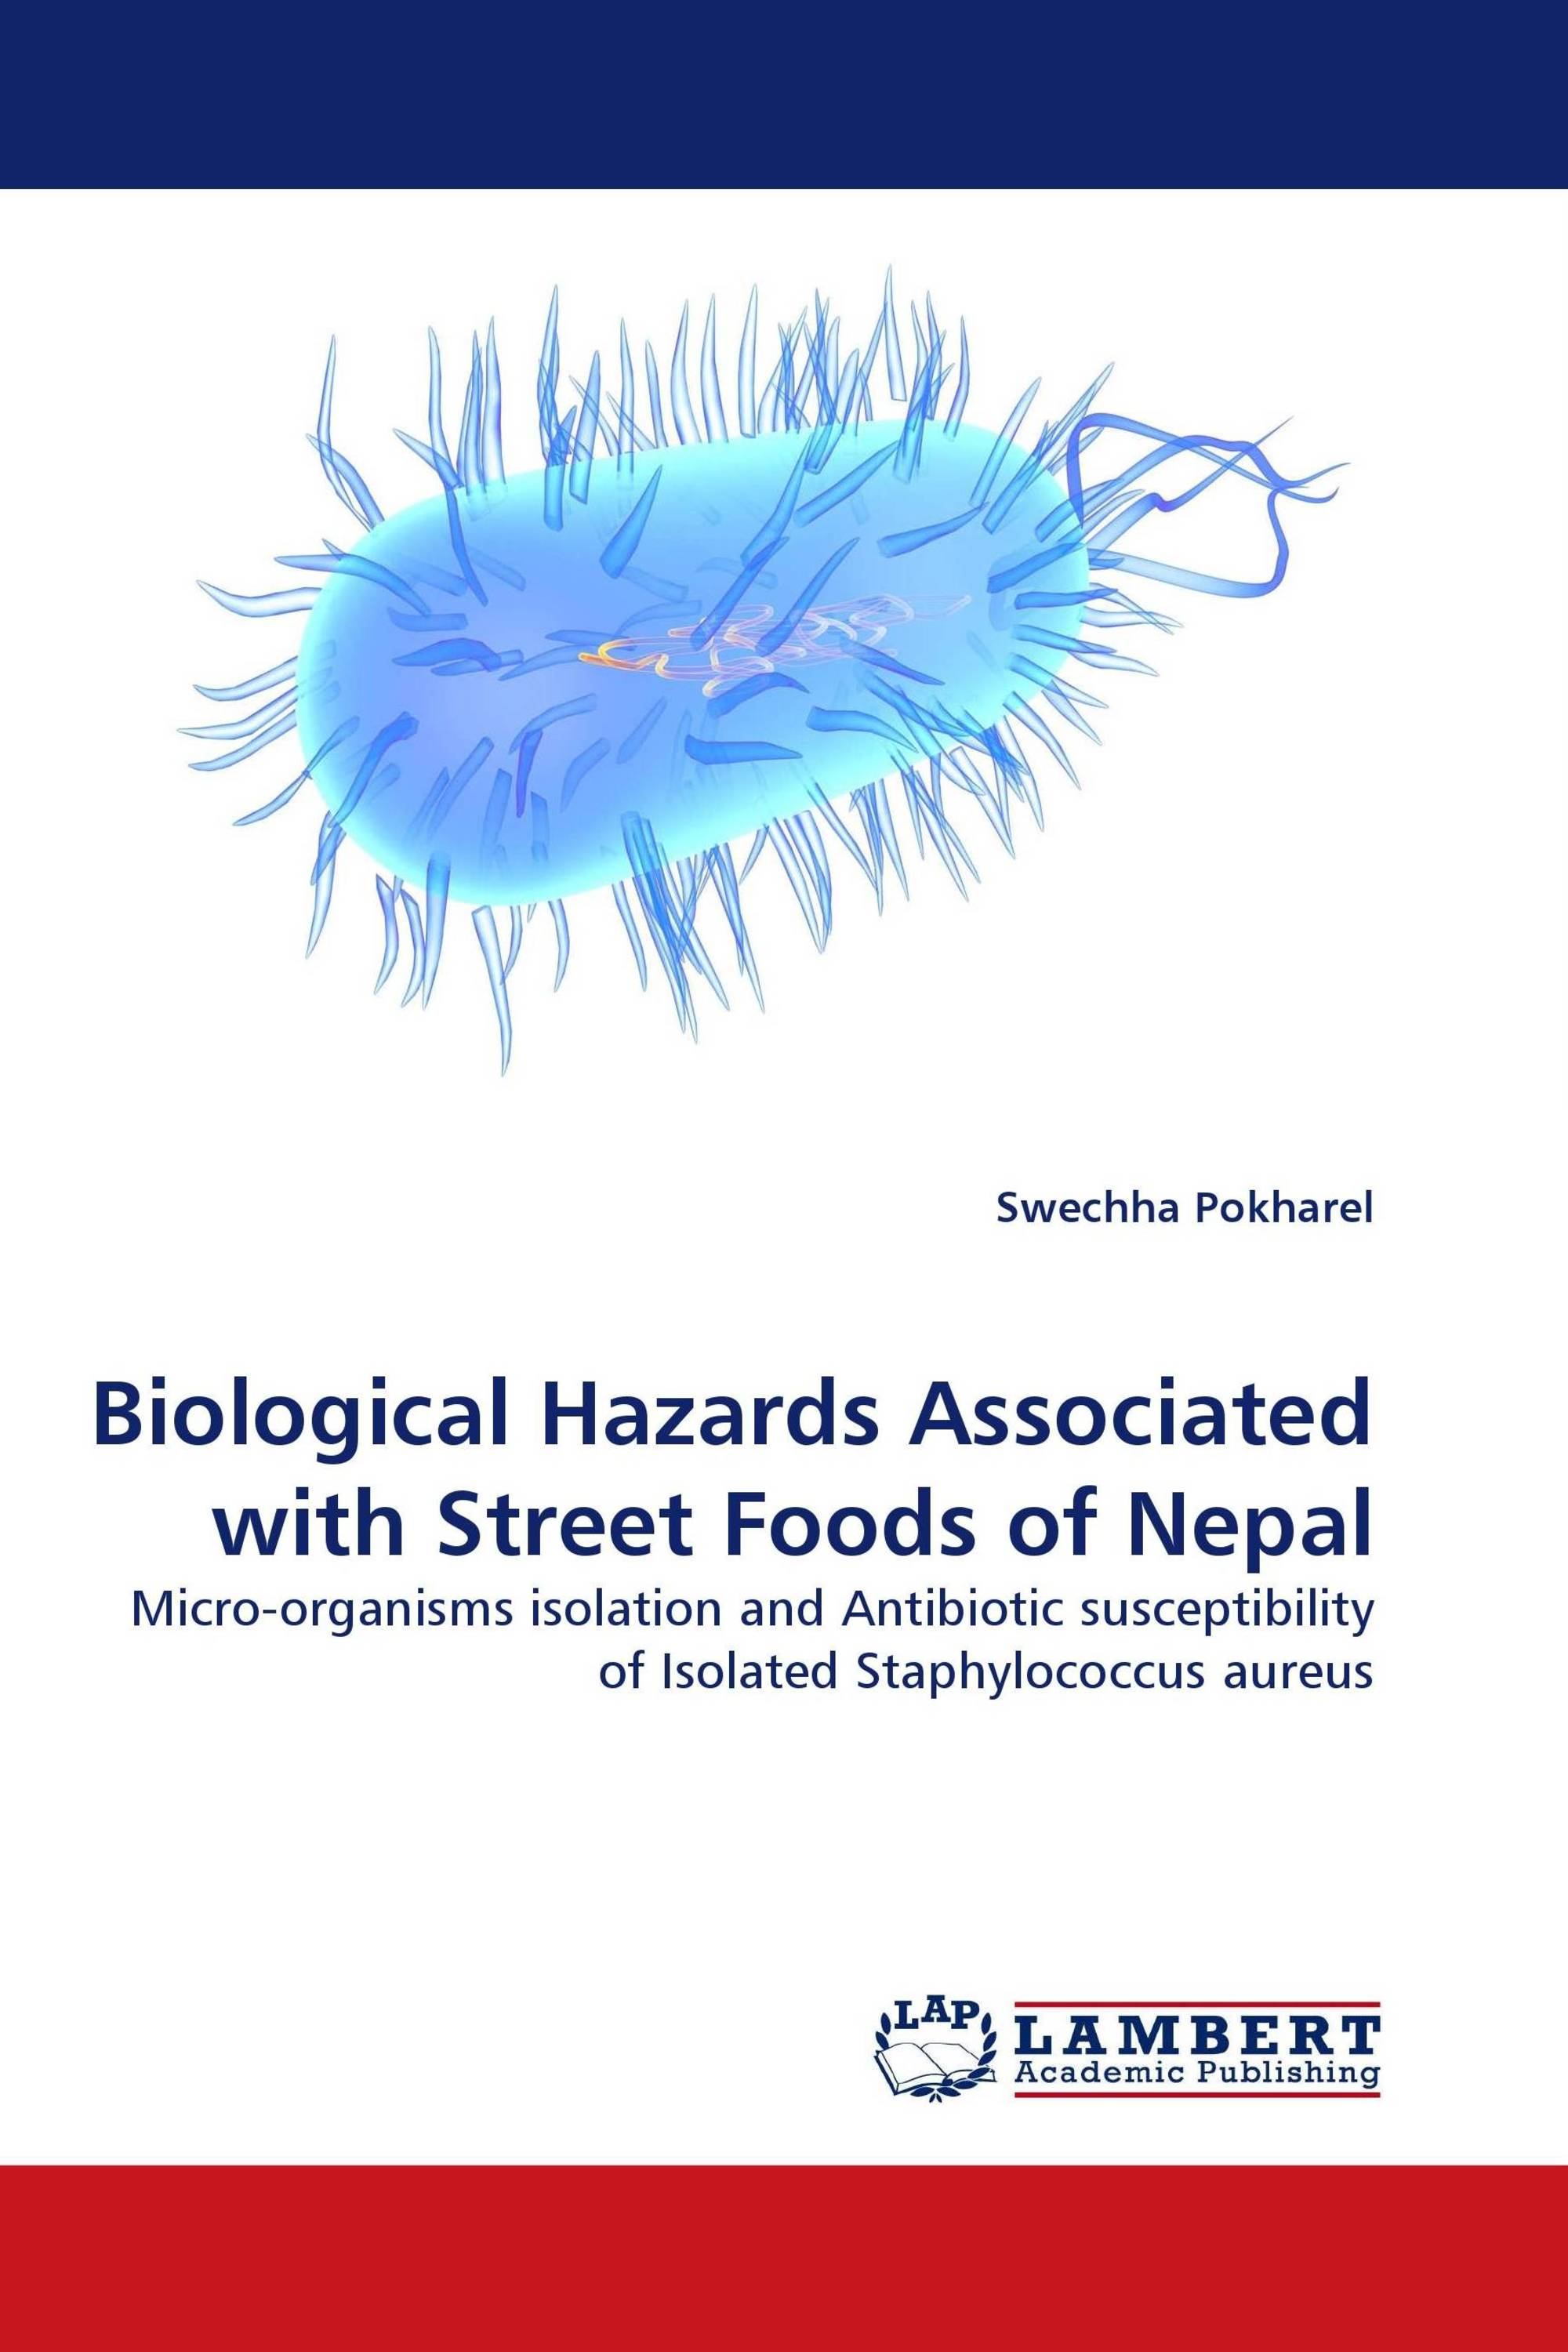 thesis about street foods